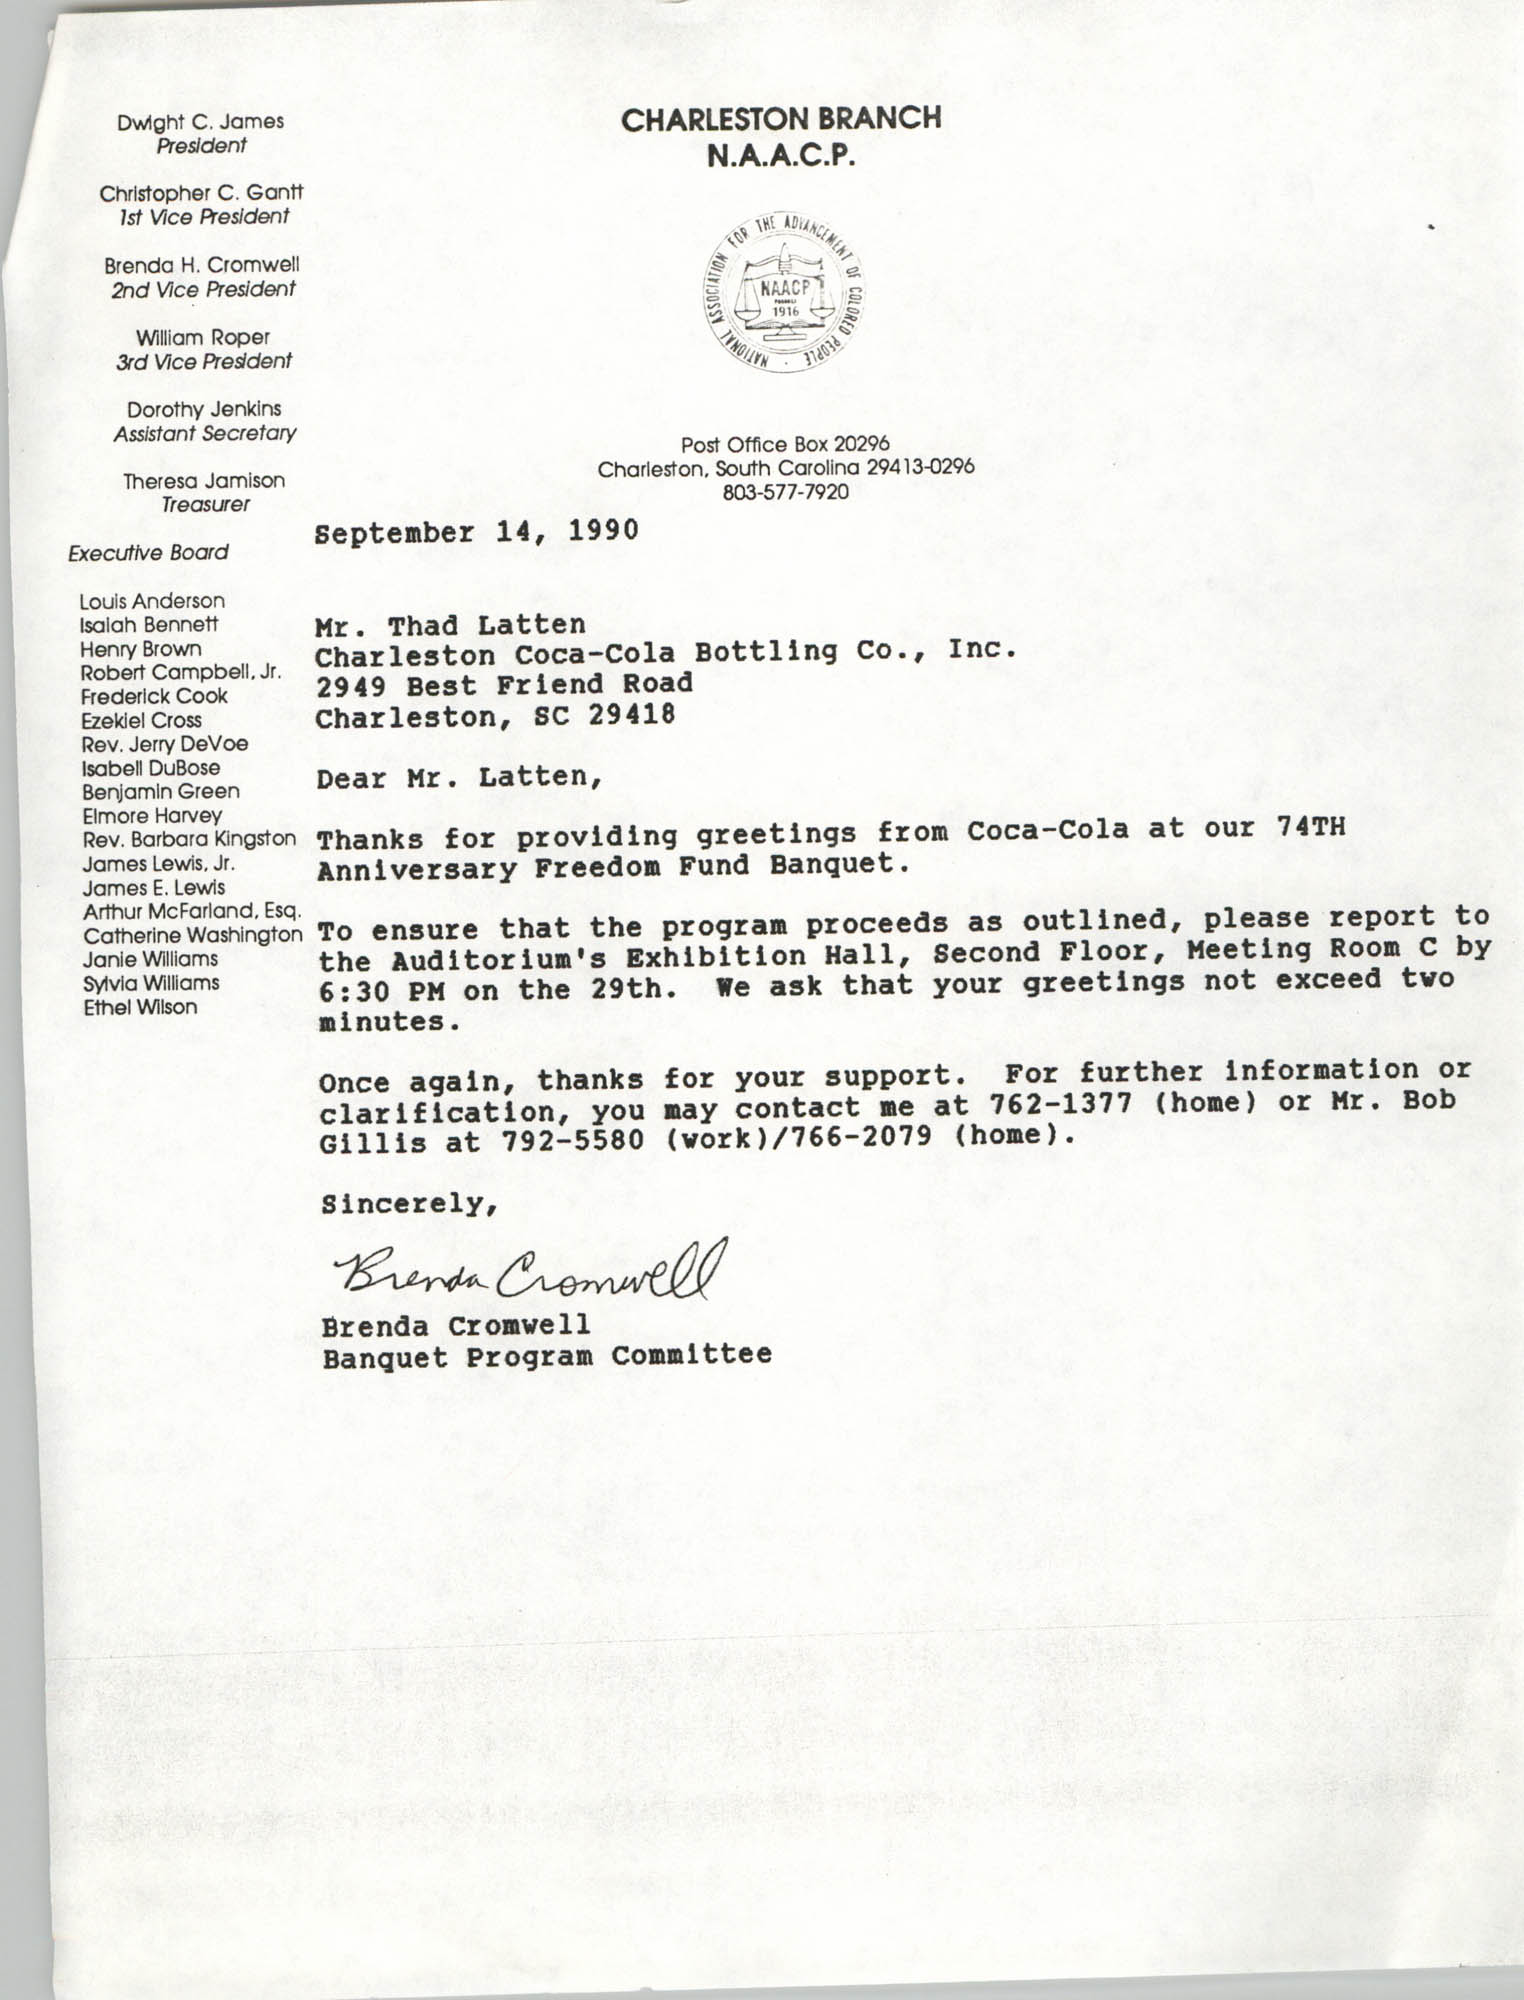 Letter from Brenda Cromwell to Thad Latten, September 14, 1990